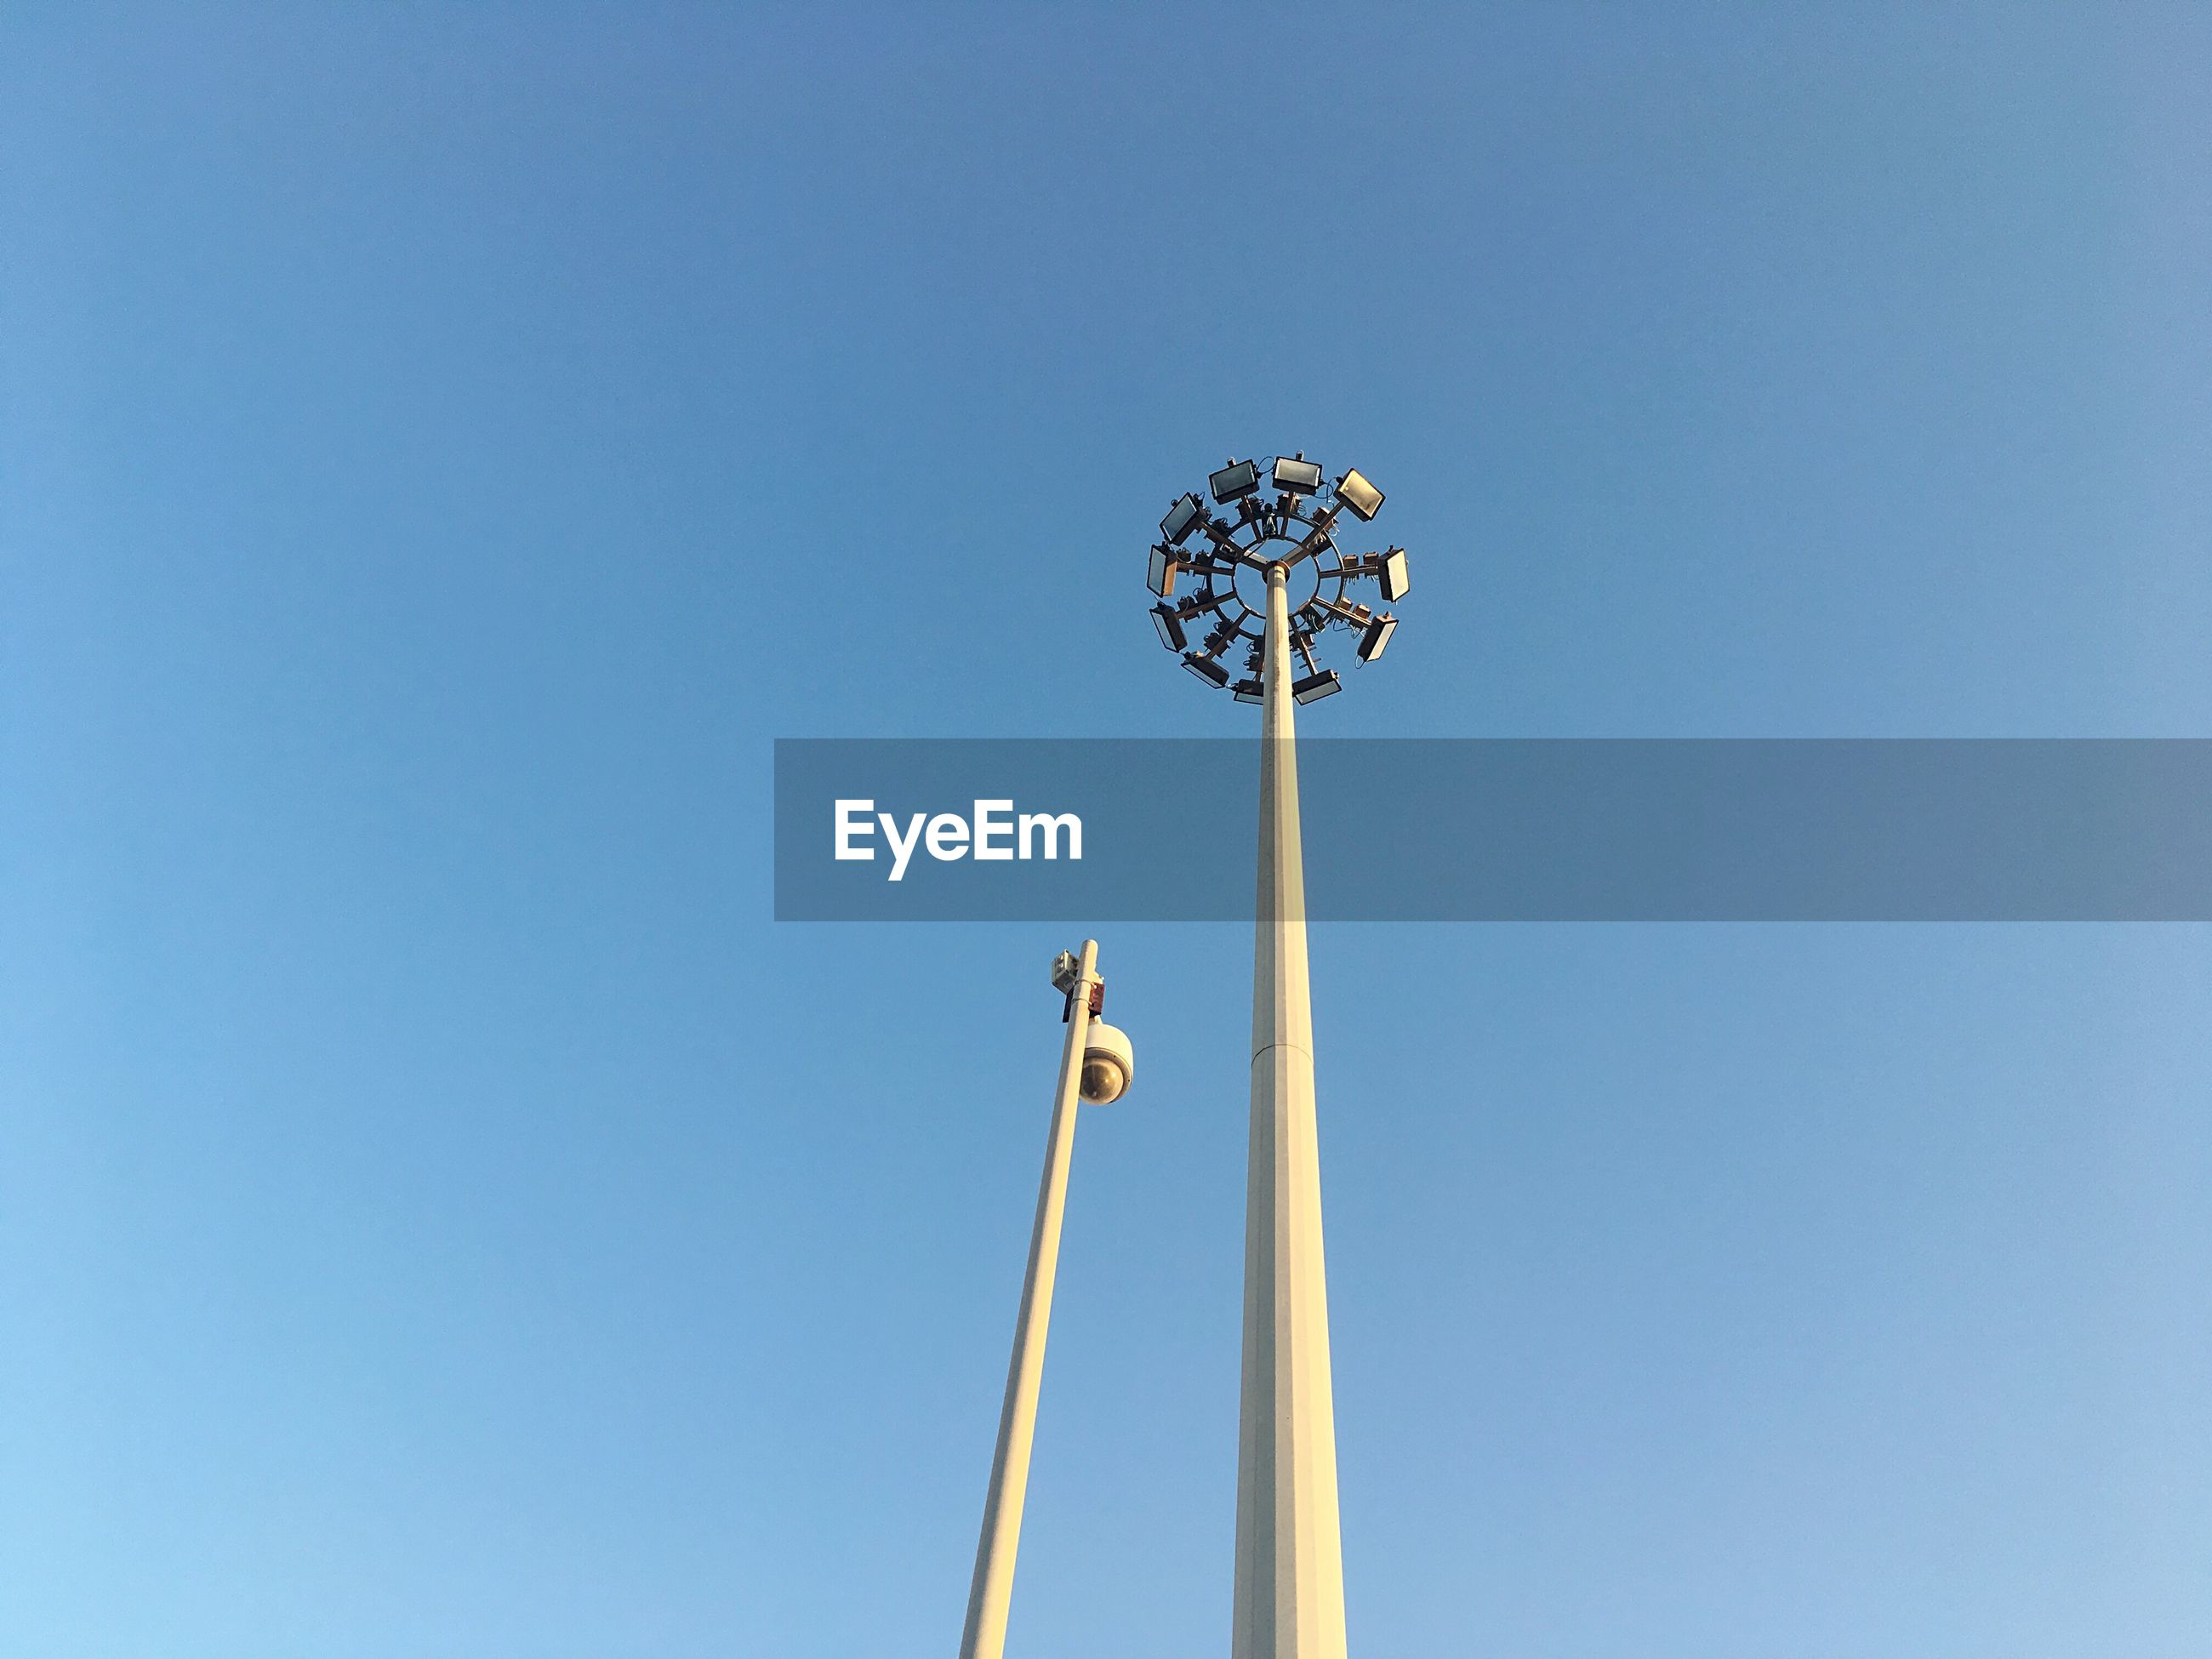 LOW ANGLE VIEW OF WIND TURBINE AGAINST CLEAR BLUE SKY